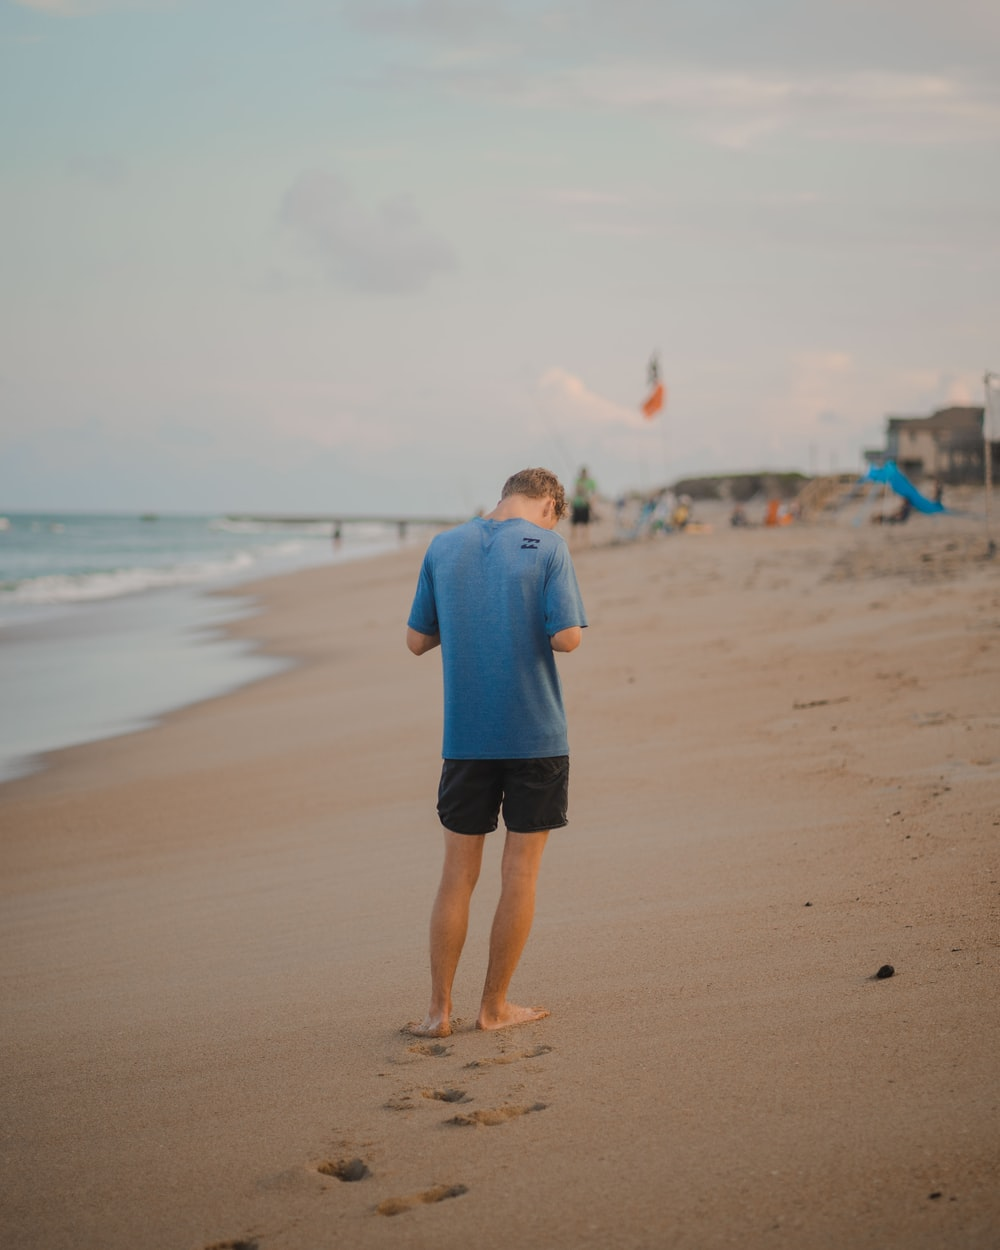 man in blue dress shirt and black shorts walking on beach during daytime